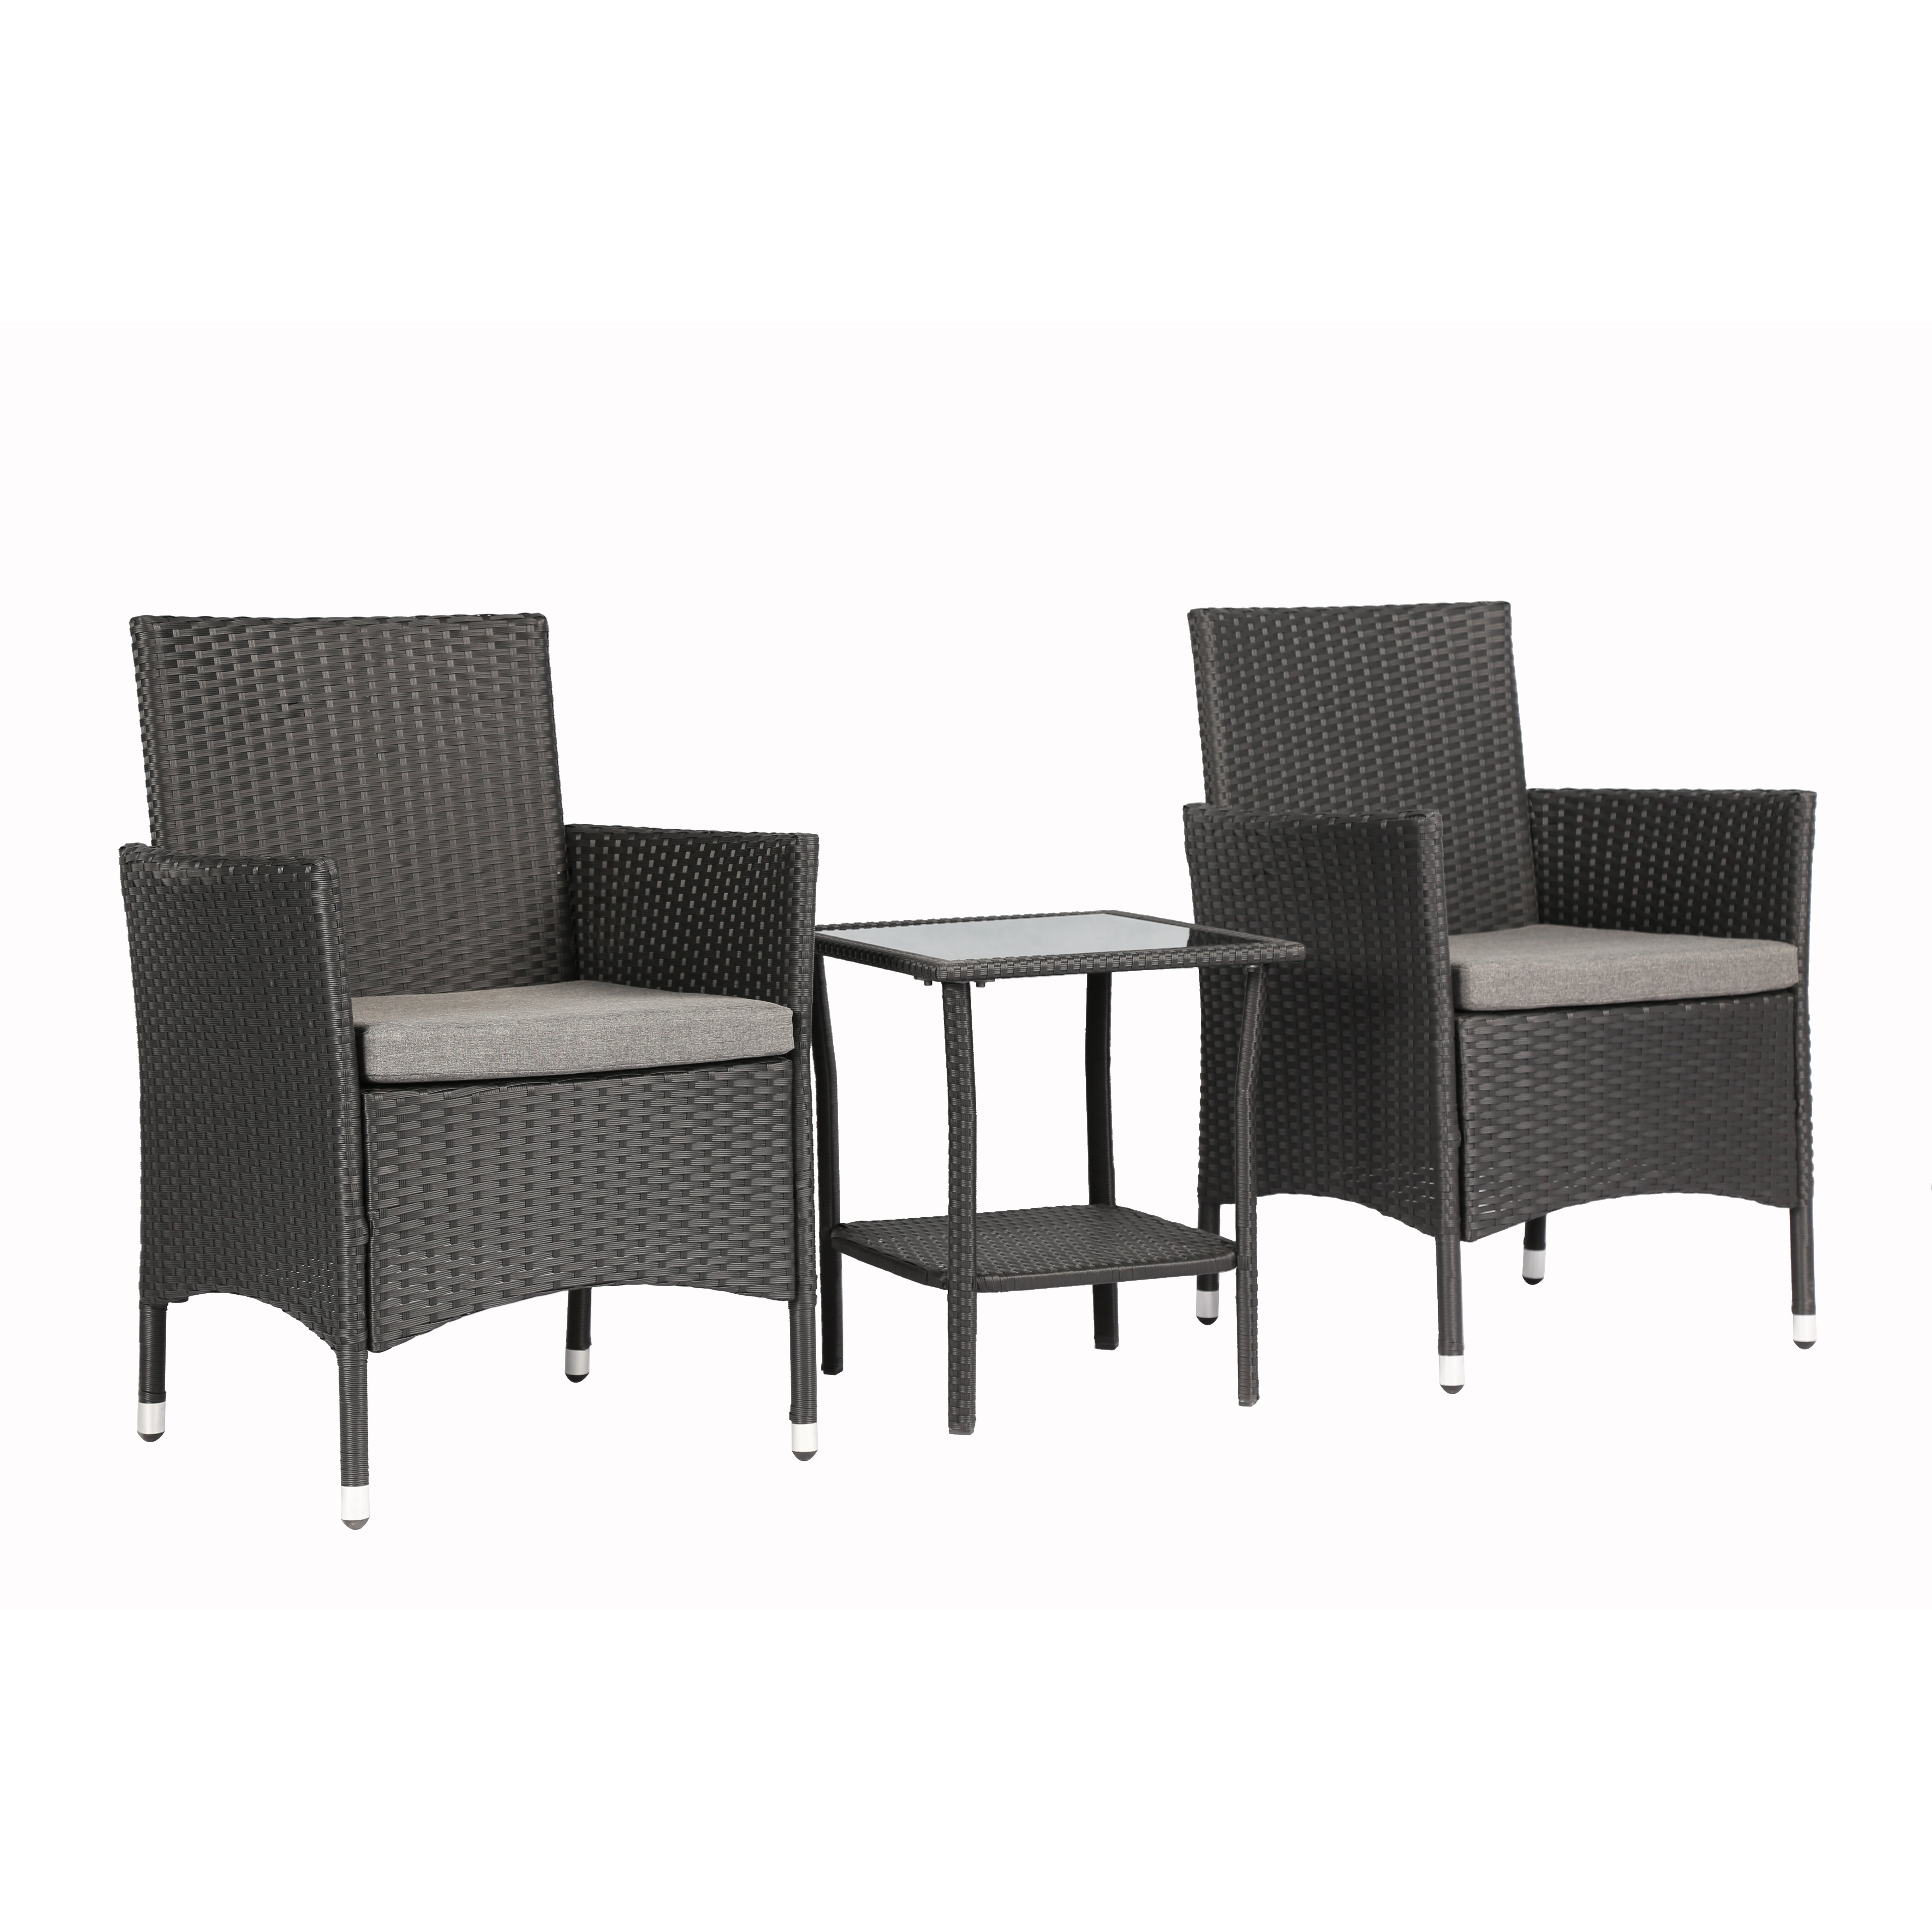 Very Impressive portraiture of Baner Garden 3 Piece Dining Set with Cushions & Reviews Wayfair with #6C665F color and 5472x5472 pixels